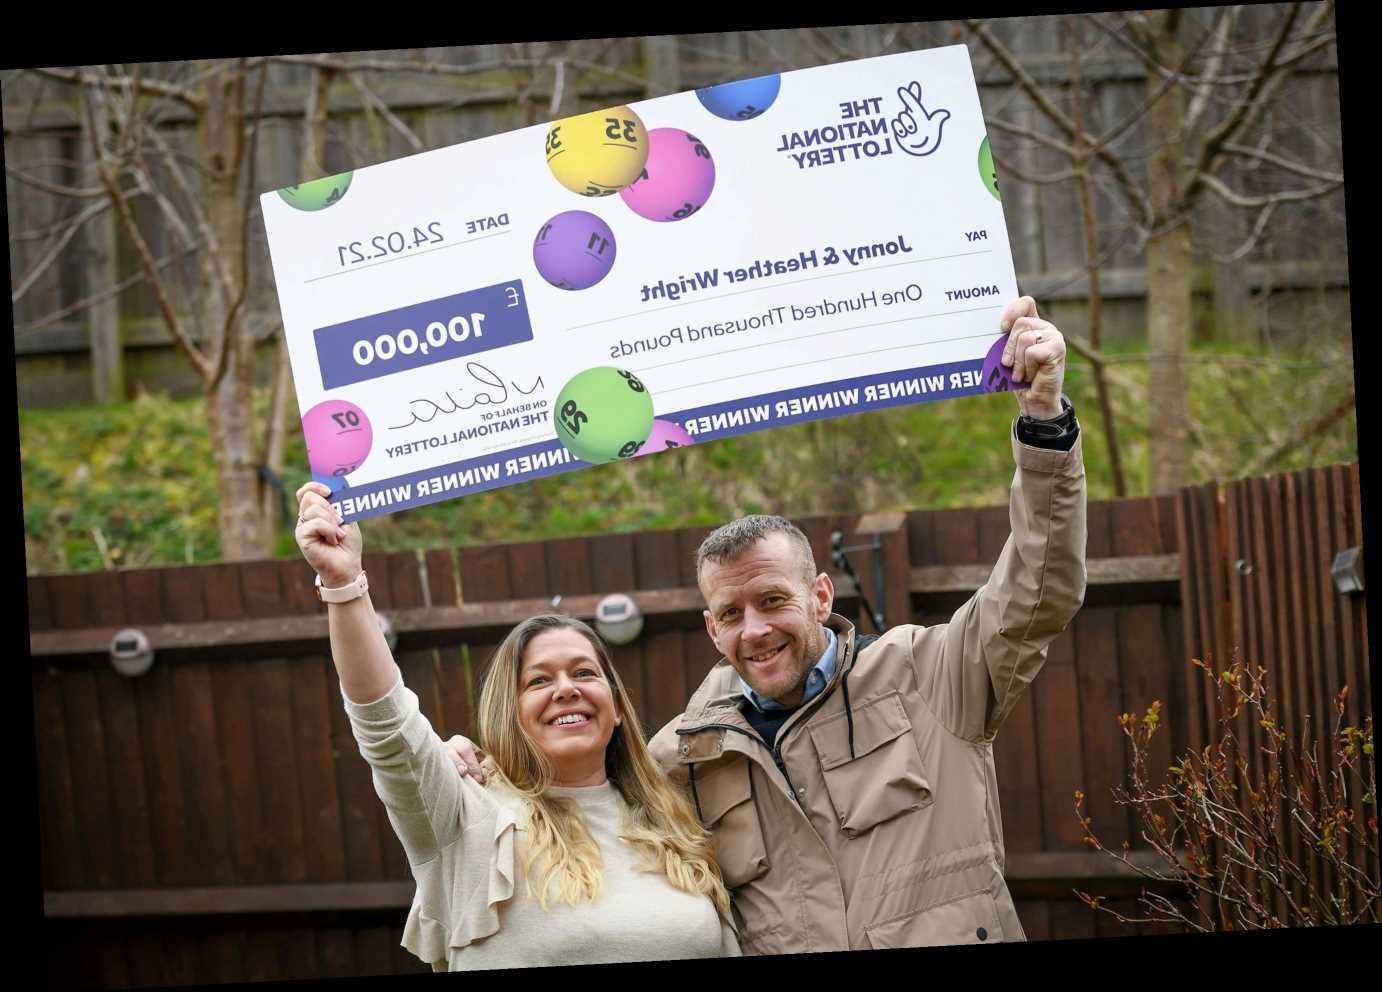 Furloughed barman scoops £100k on a £2 National Lottery scratchcard after tough year